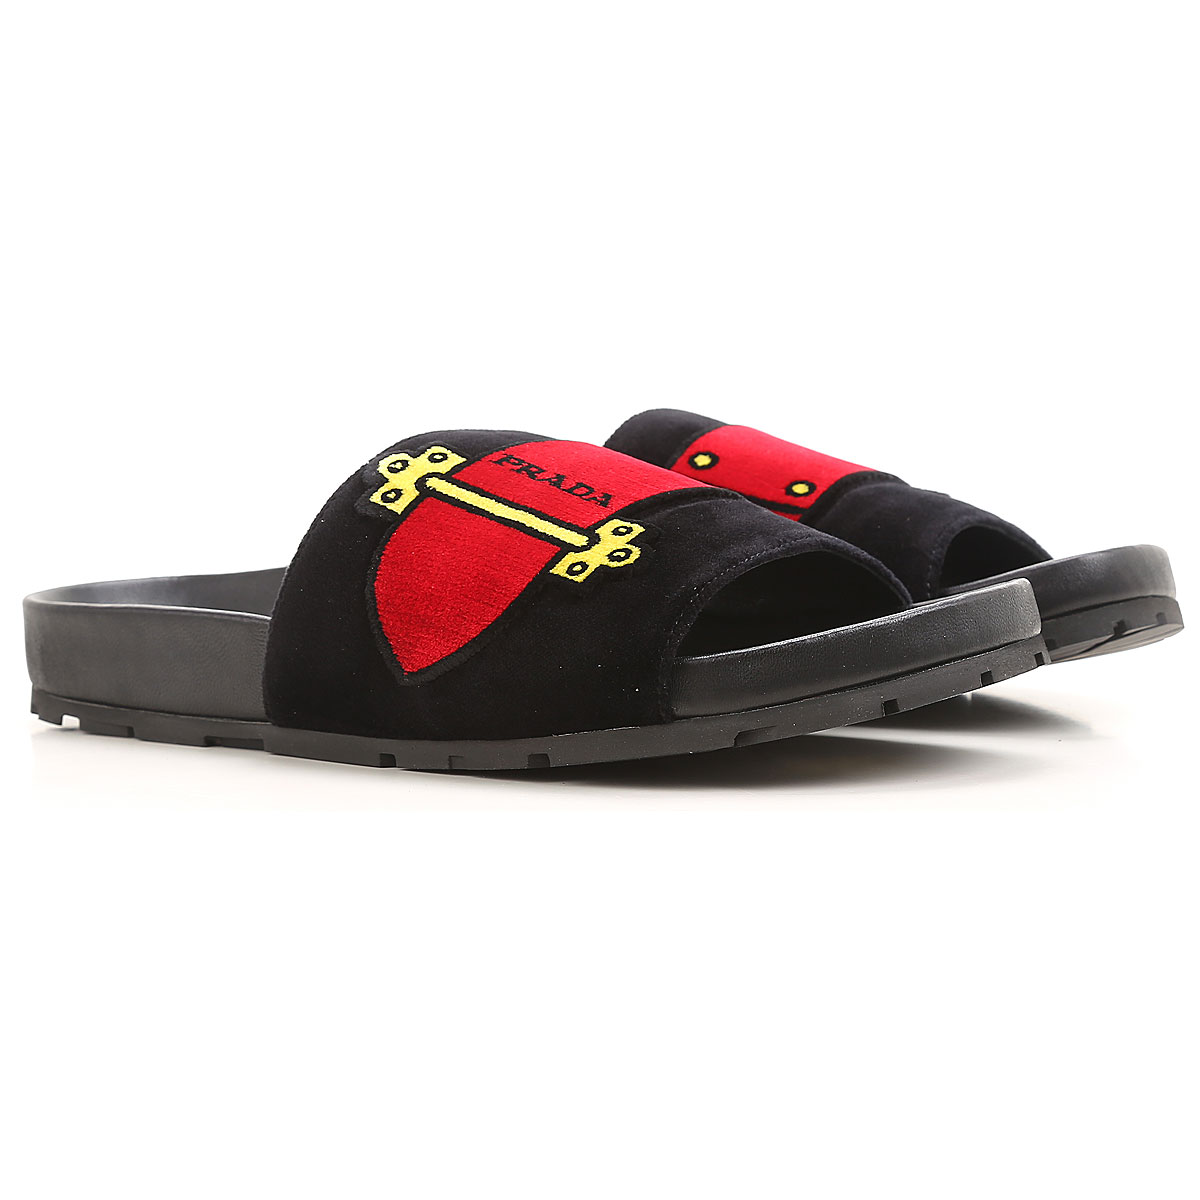 prada sandals for women on sale in outlet, black, leather, 2019, 2.5 3.5 4.5